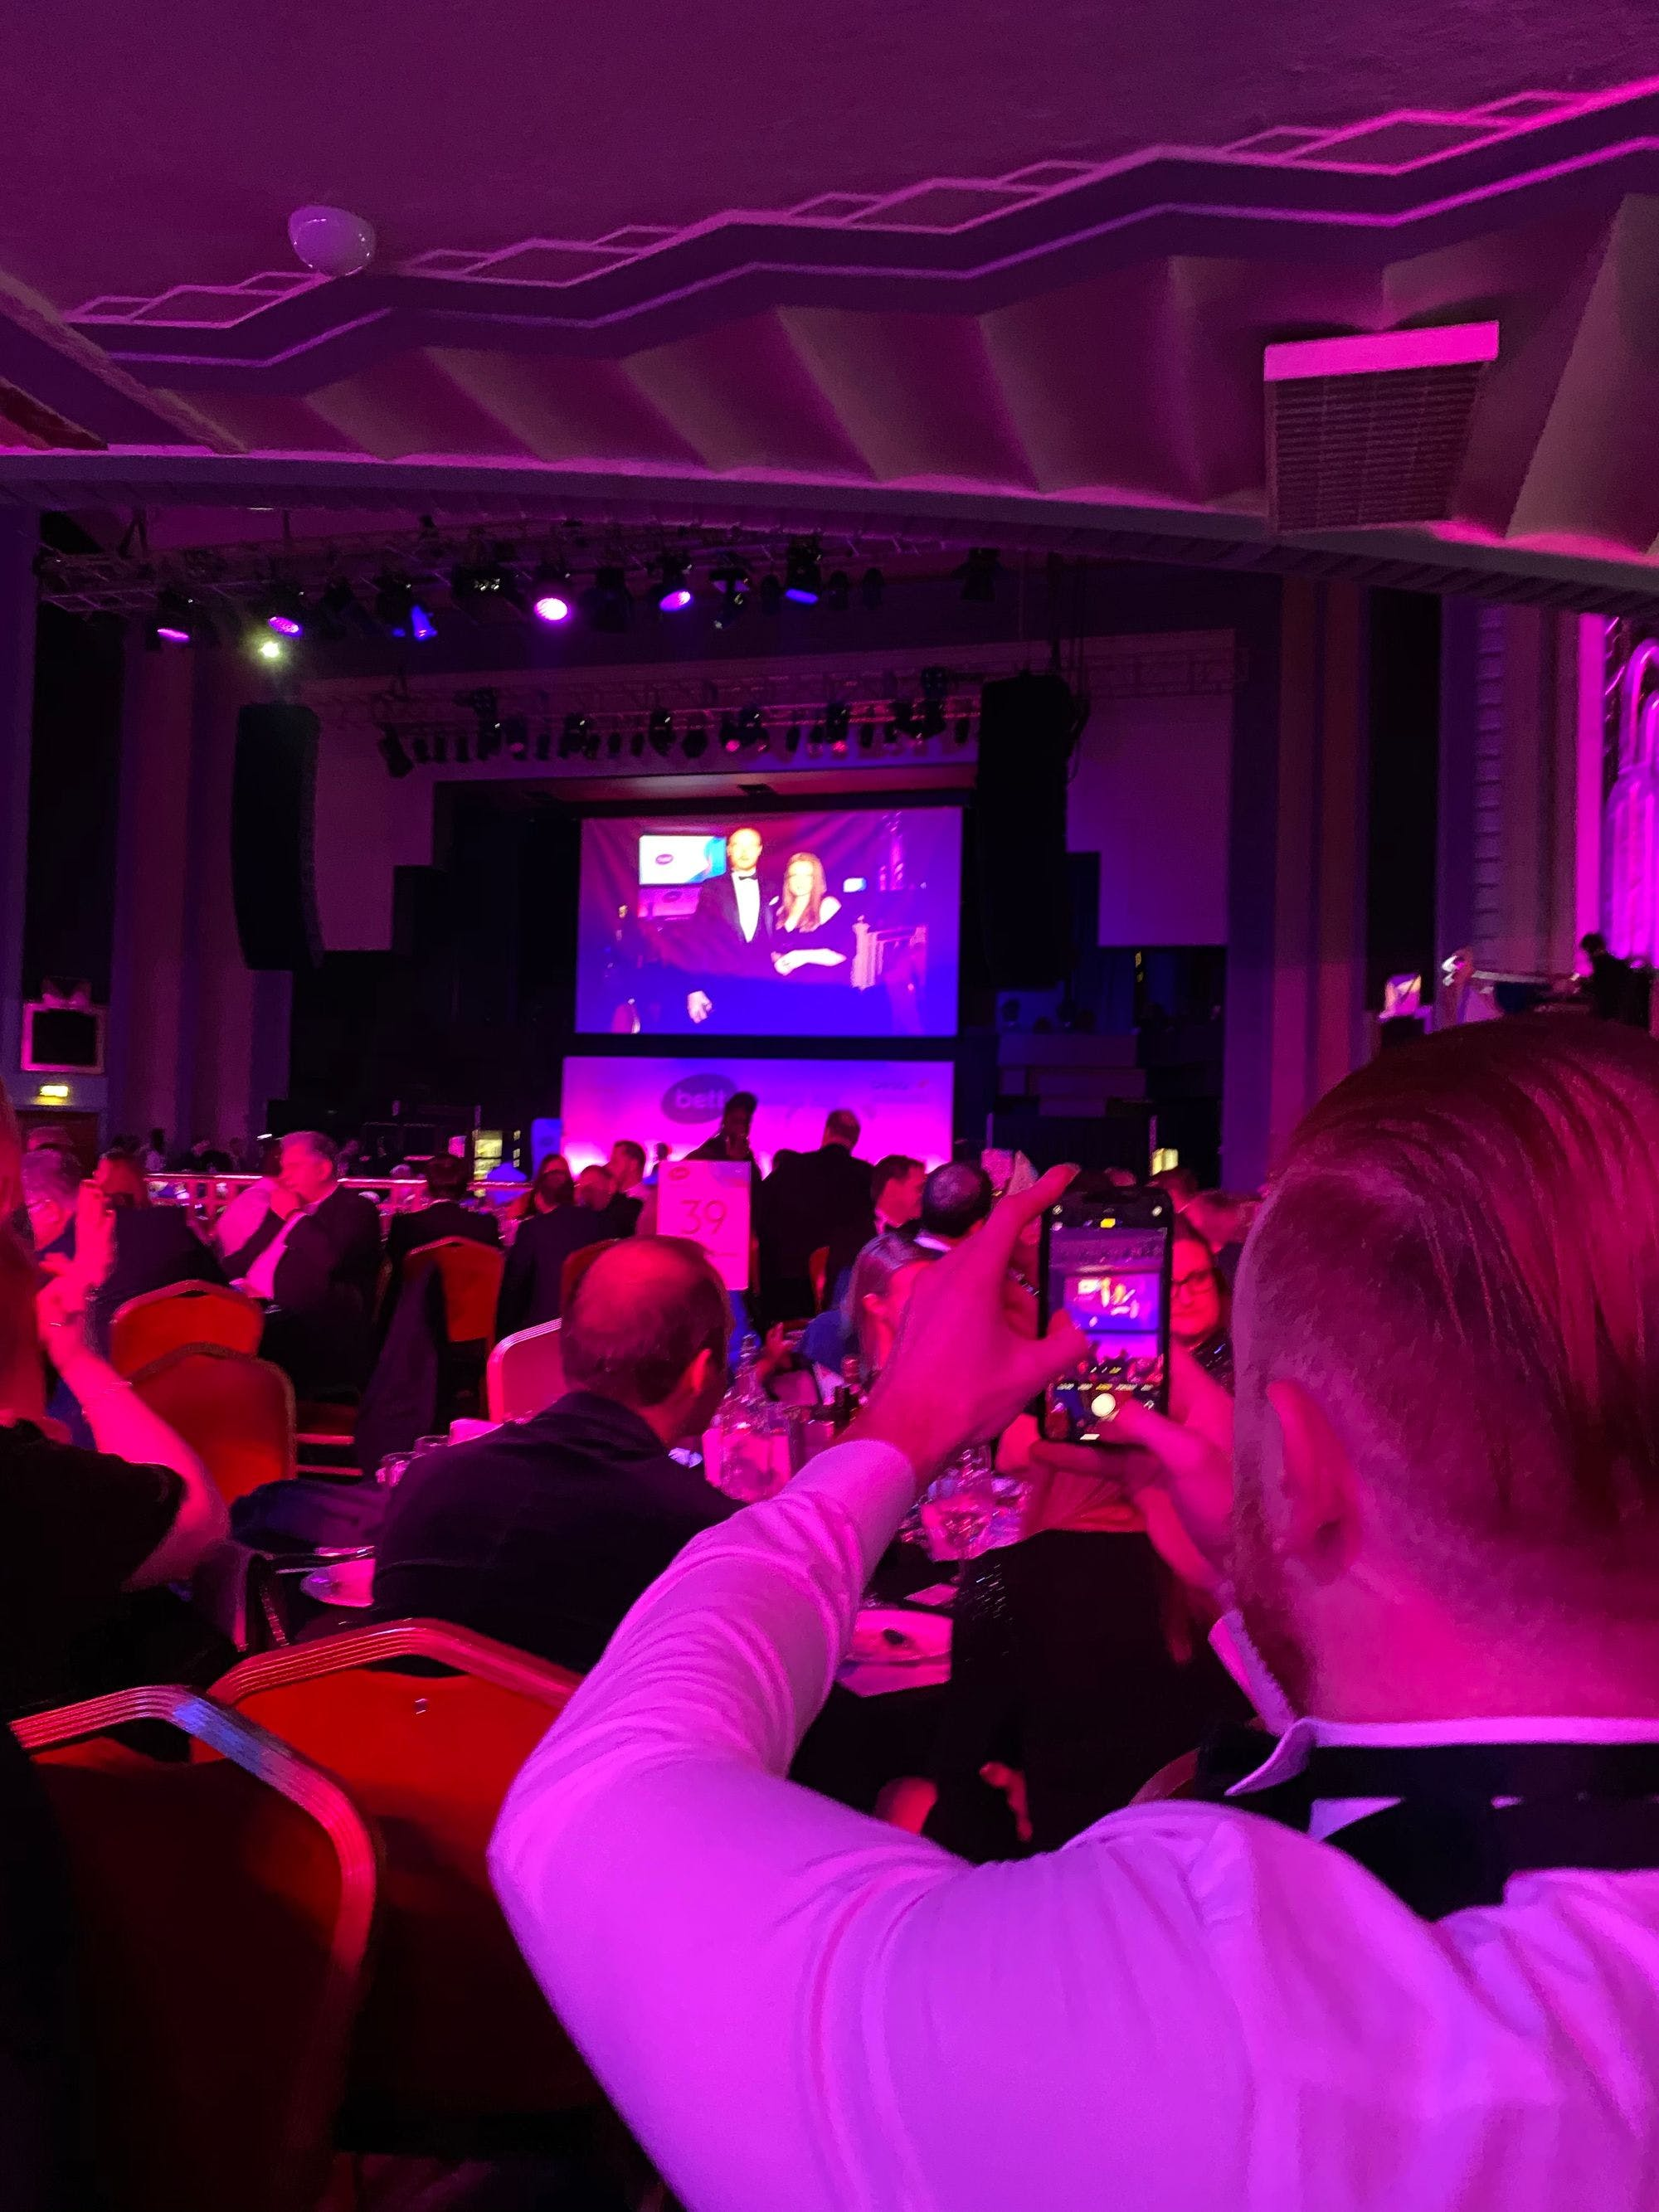 DBS checks vetting pre employment appointment bett show awards finalists leadership and management solutions troxy london co-founder Luke O'Dwyer photo SCR Tracker single central register winner award-winning highly commended by judges